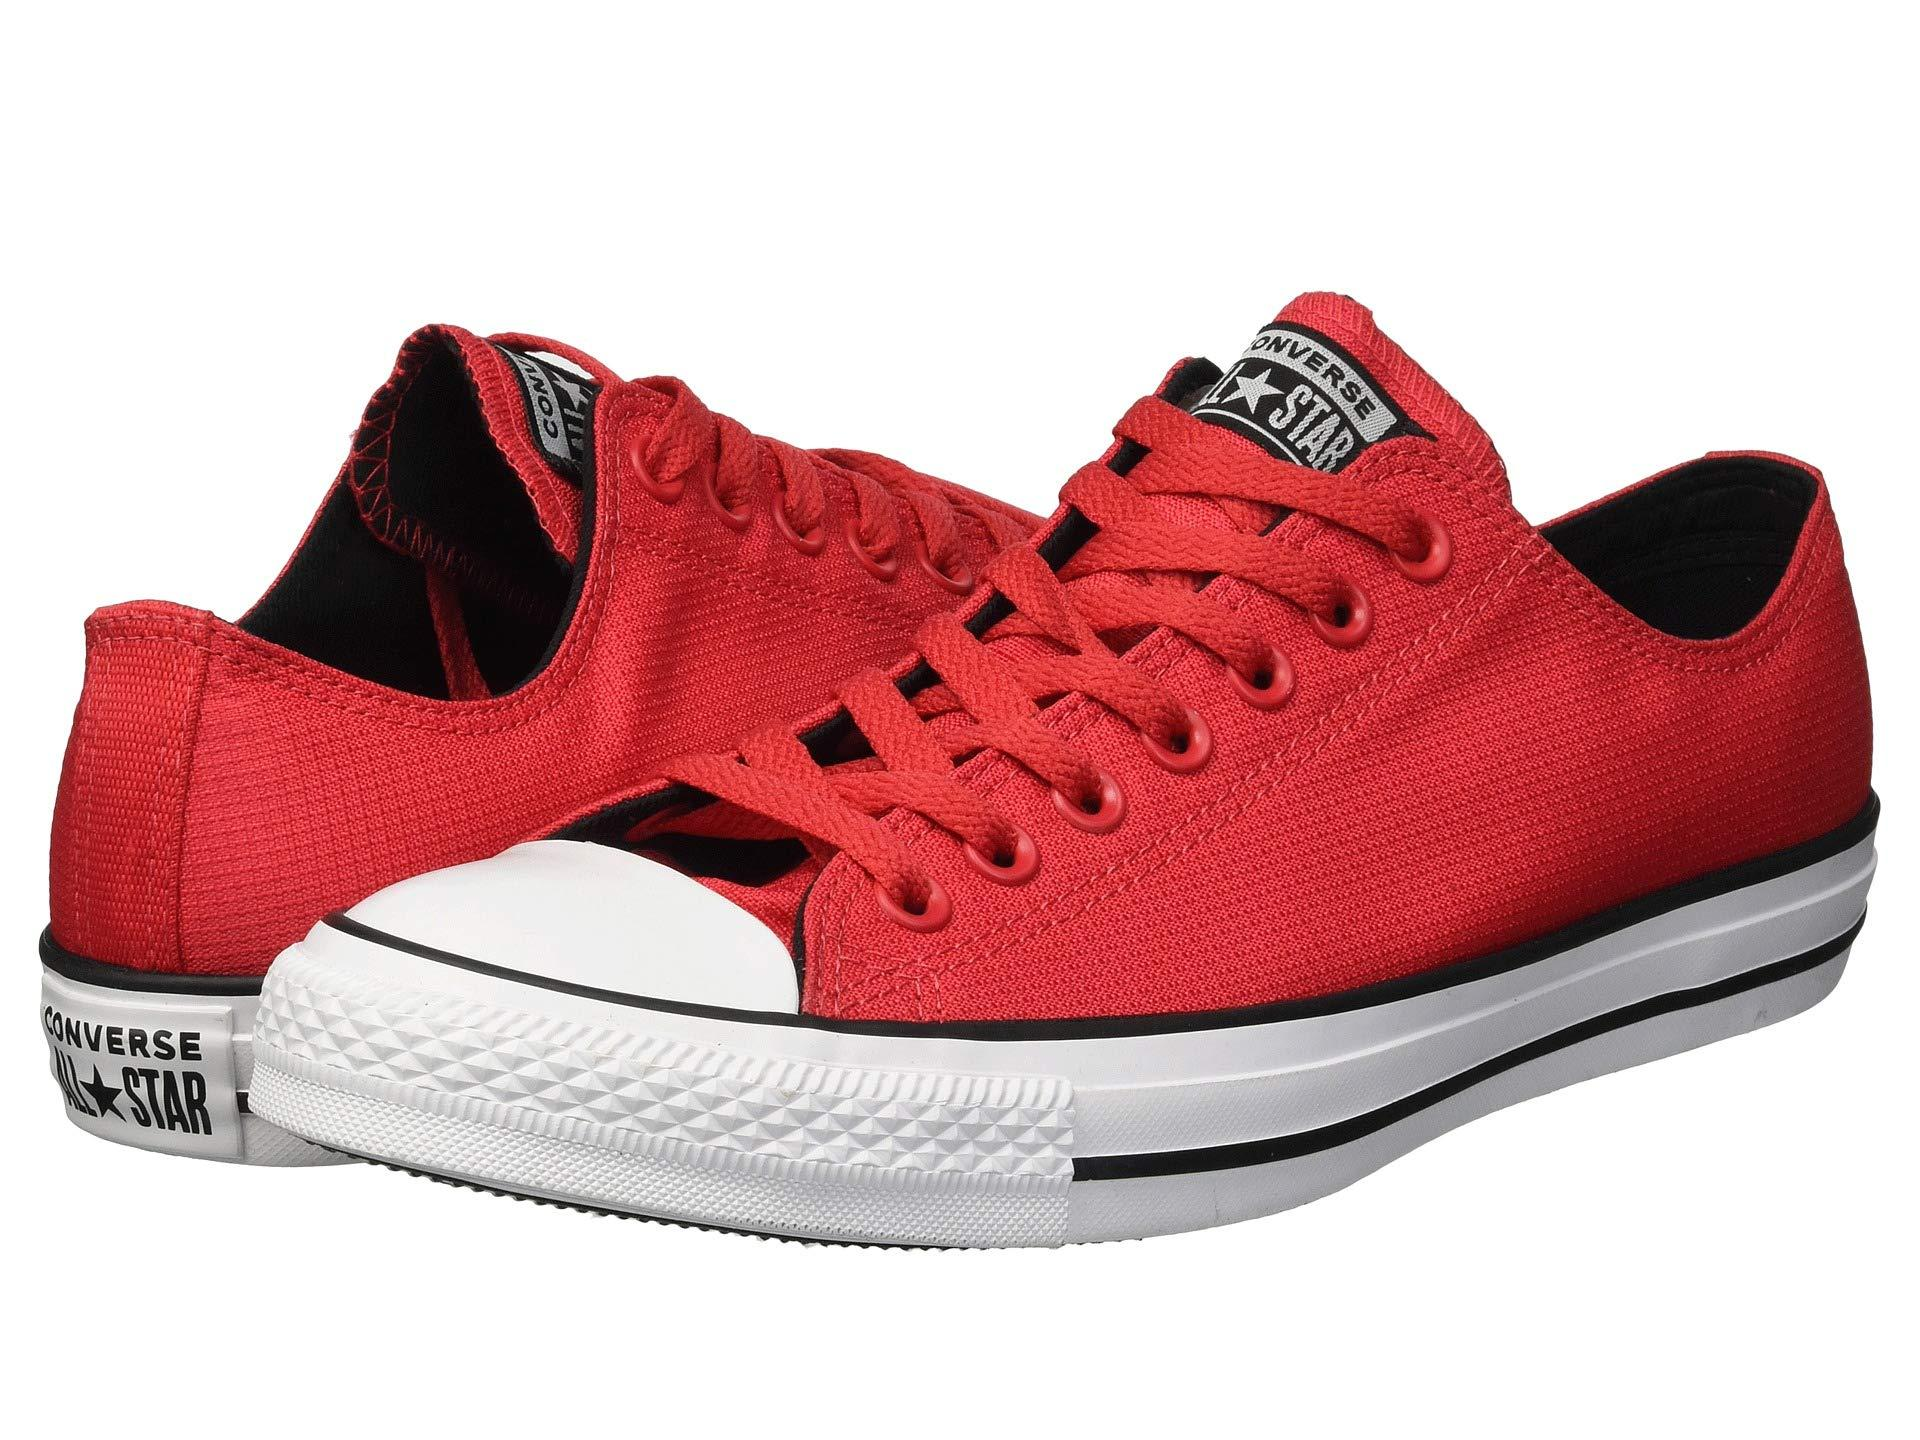 4c109c4ce8dc08 Converse - Red Chuck Taylor All Star Lightweight Nylon - Ox for Men - Lyst.  View fullscreen